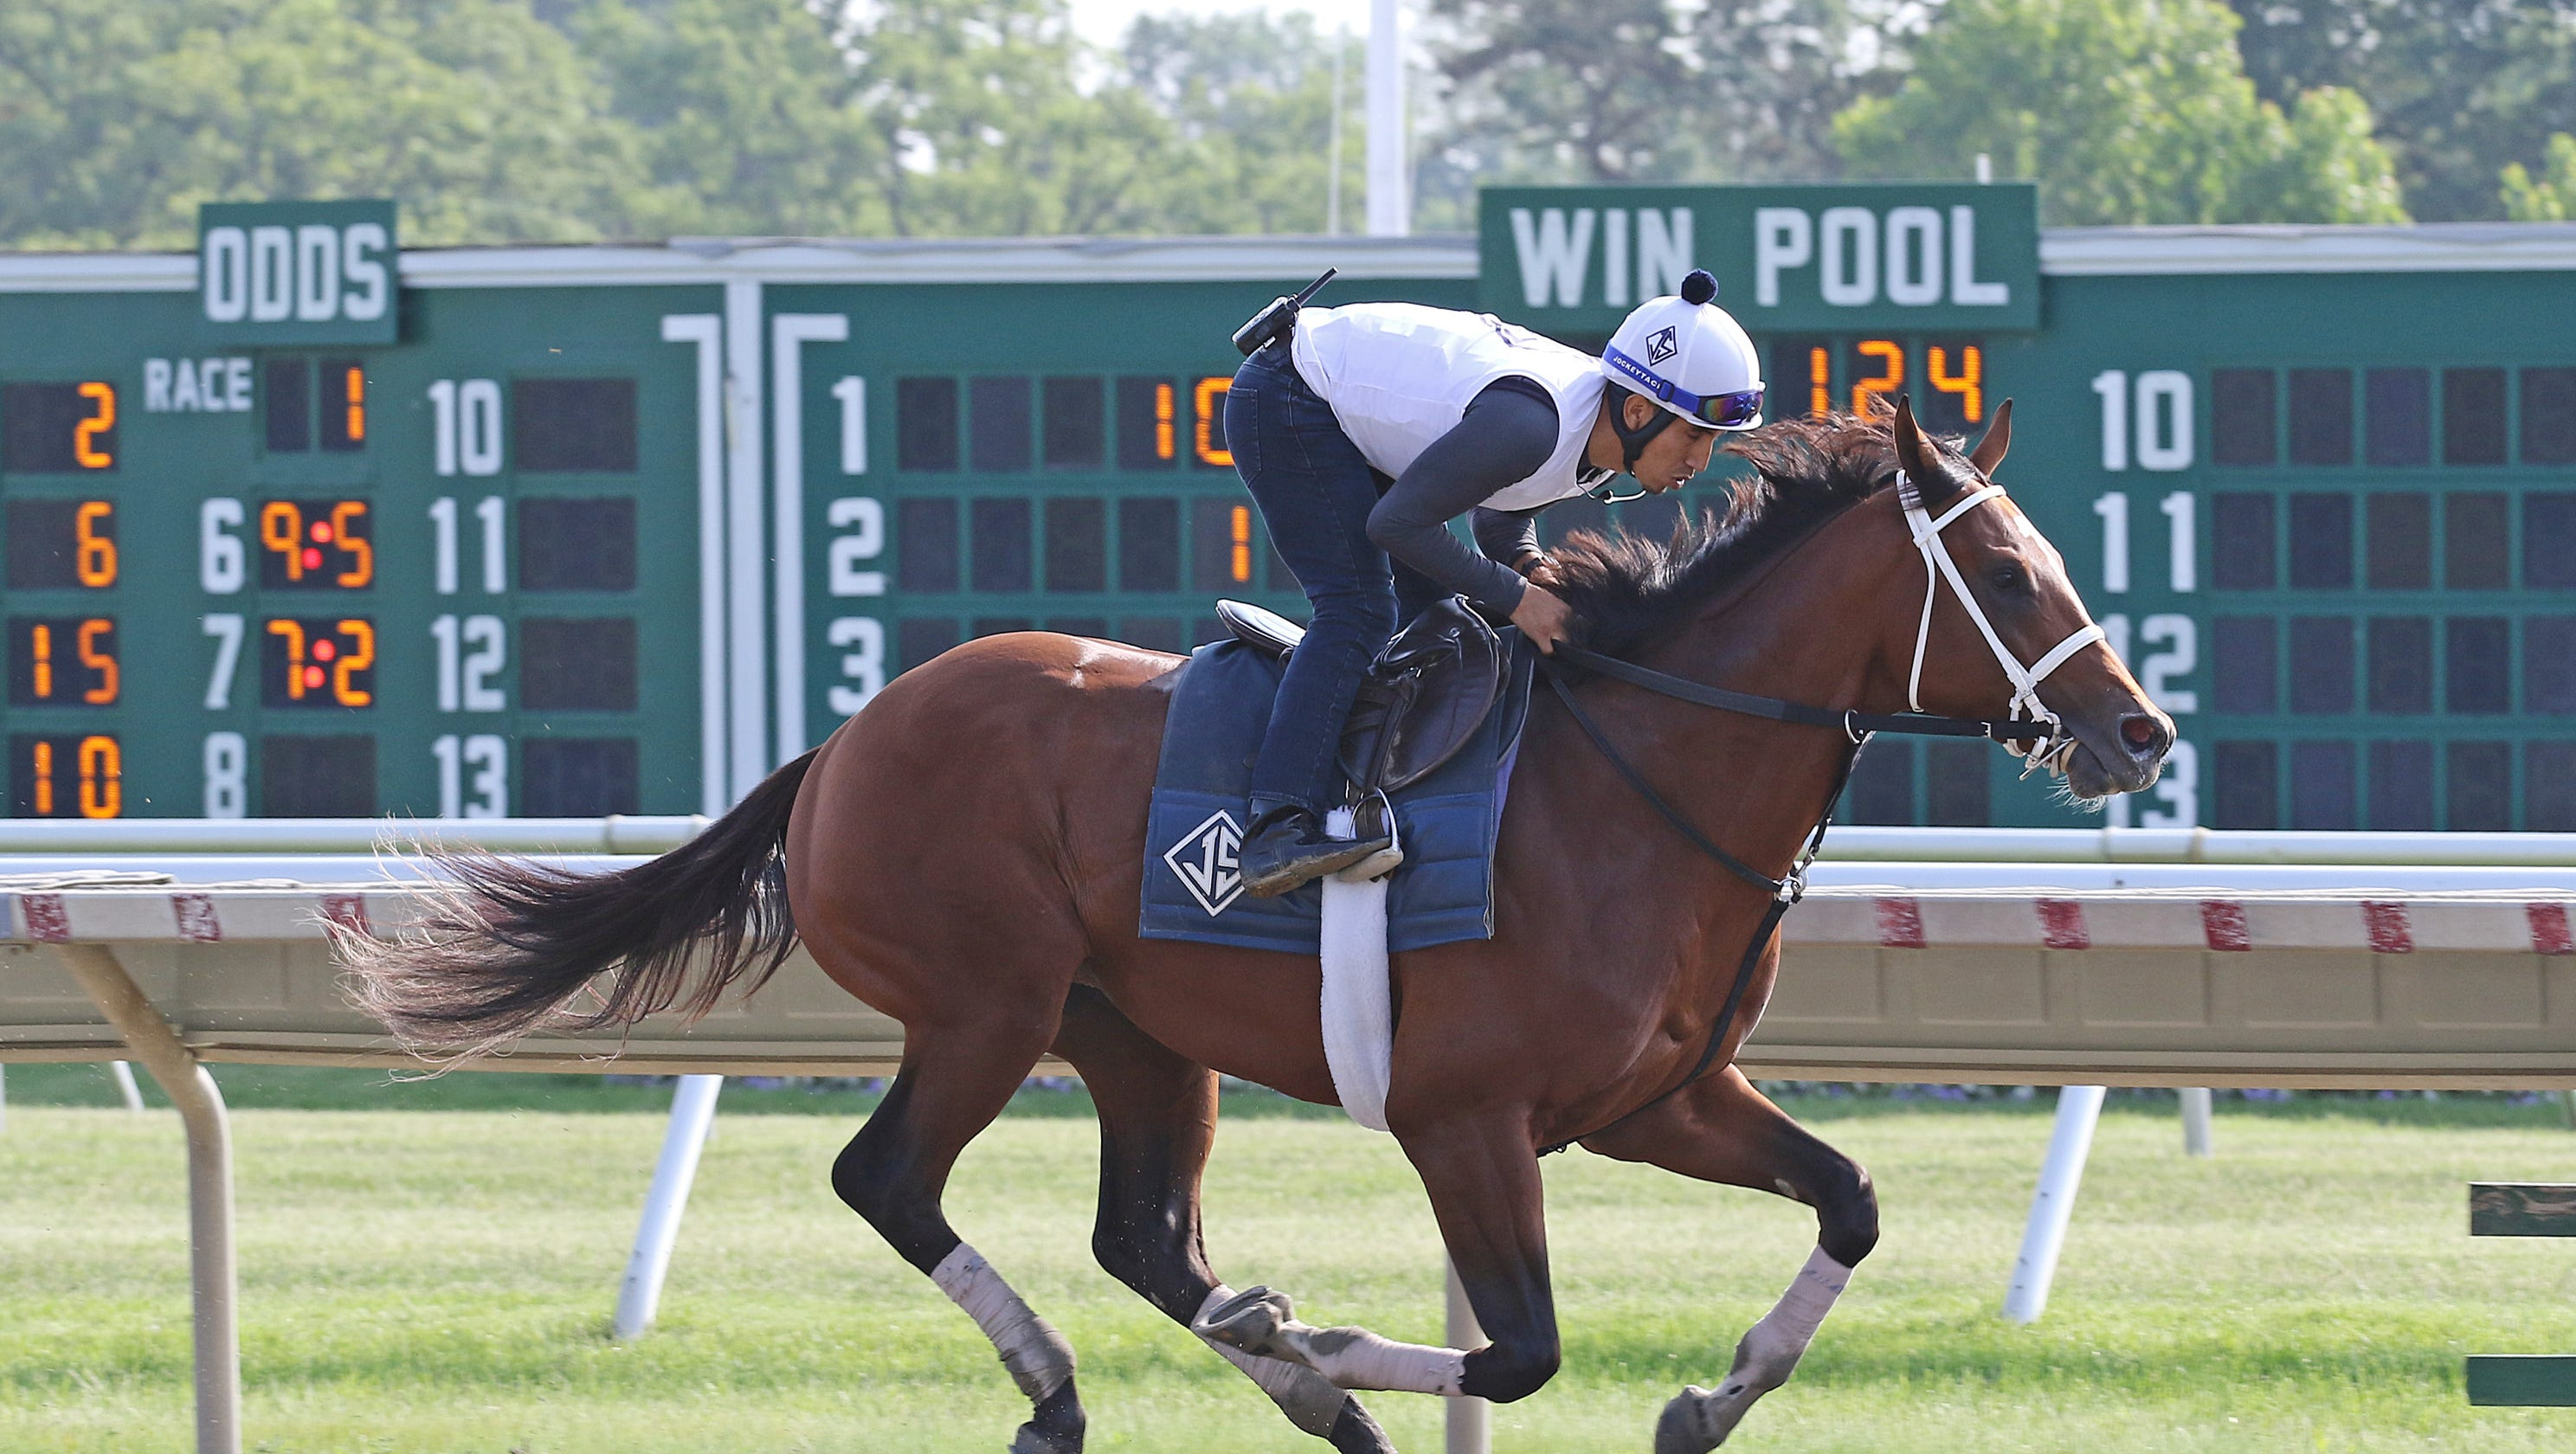 Maximum Security Breezes In Preparation For Monmouth Park Race